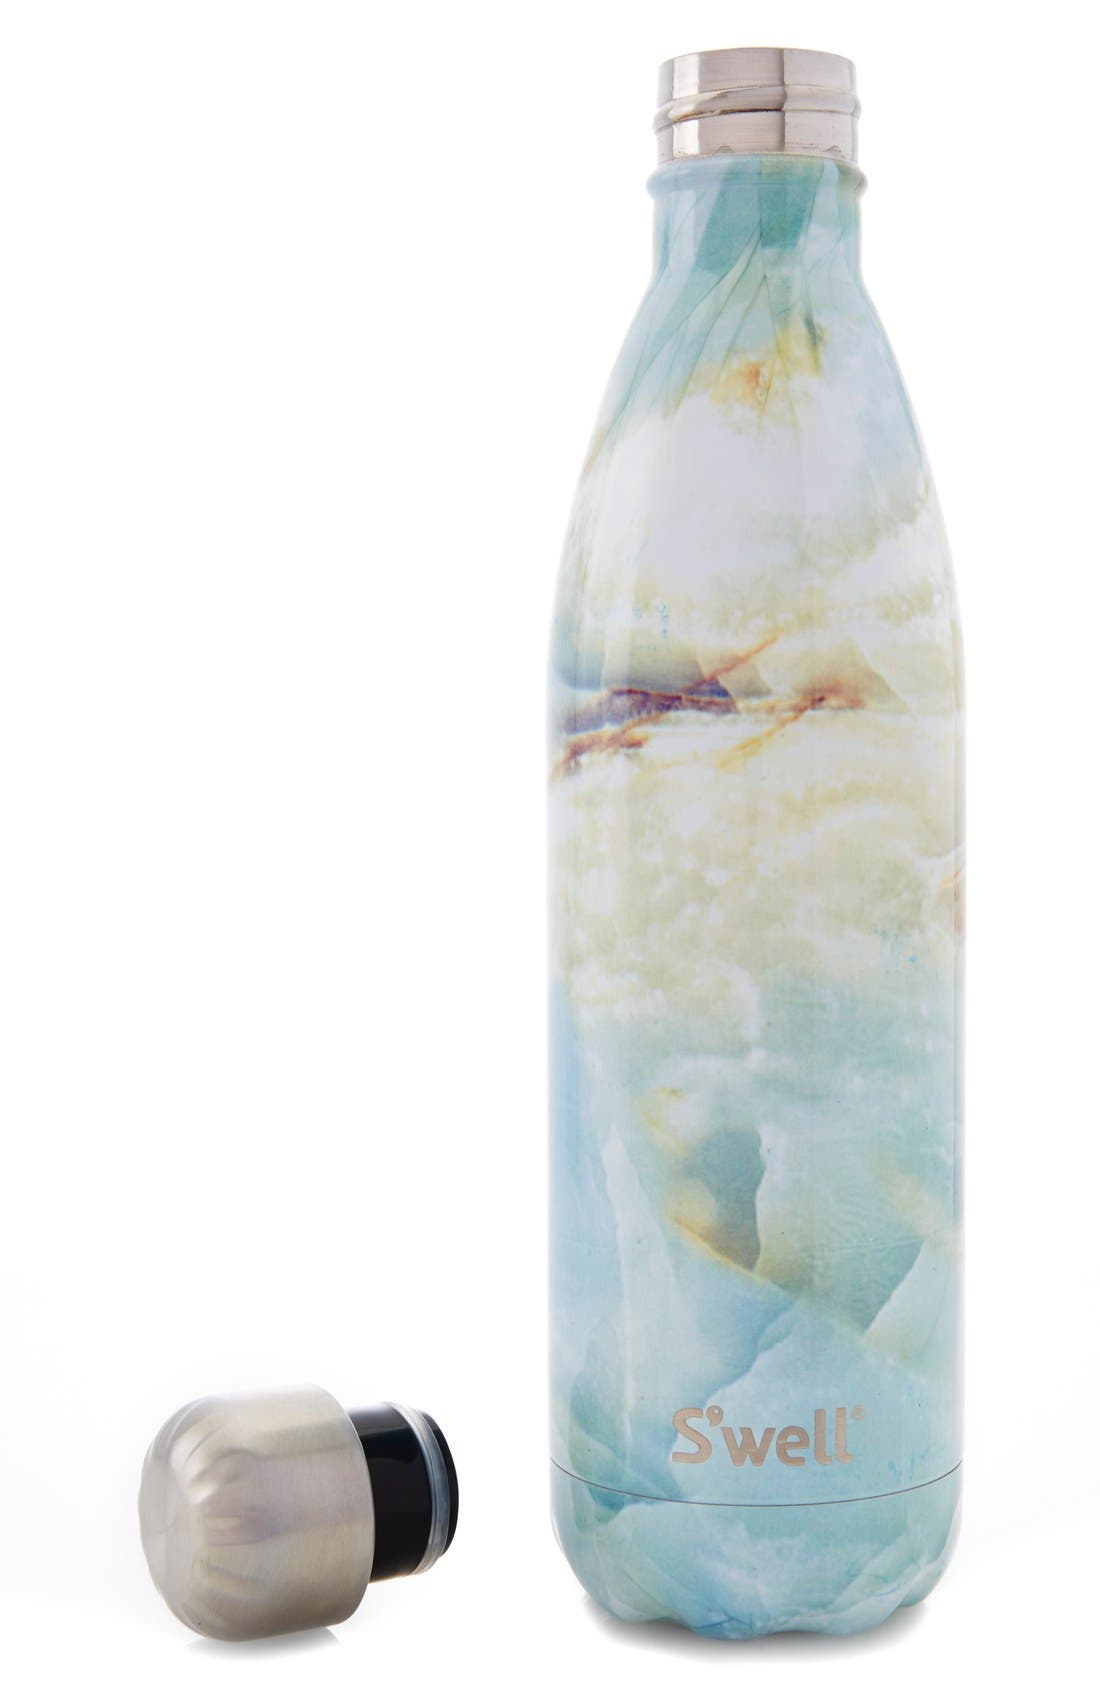 Elements Collection - Opal Marble Stainless Steel Water Bottle,                             Alternate thumbnail 6, color,                             Opal Marble